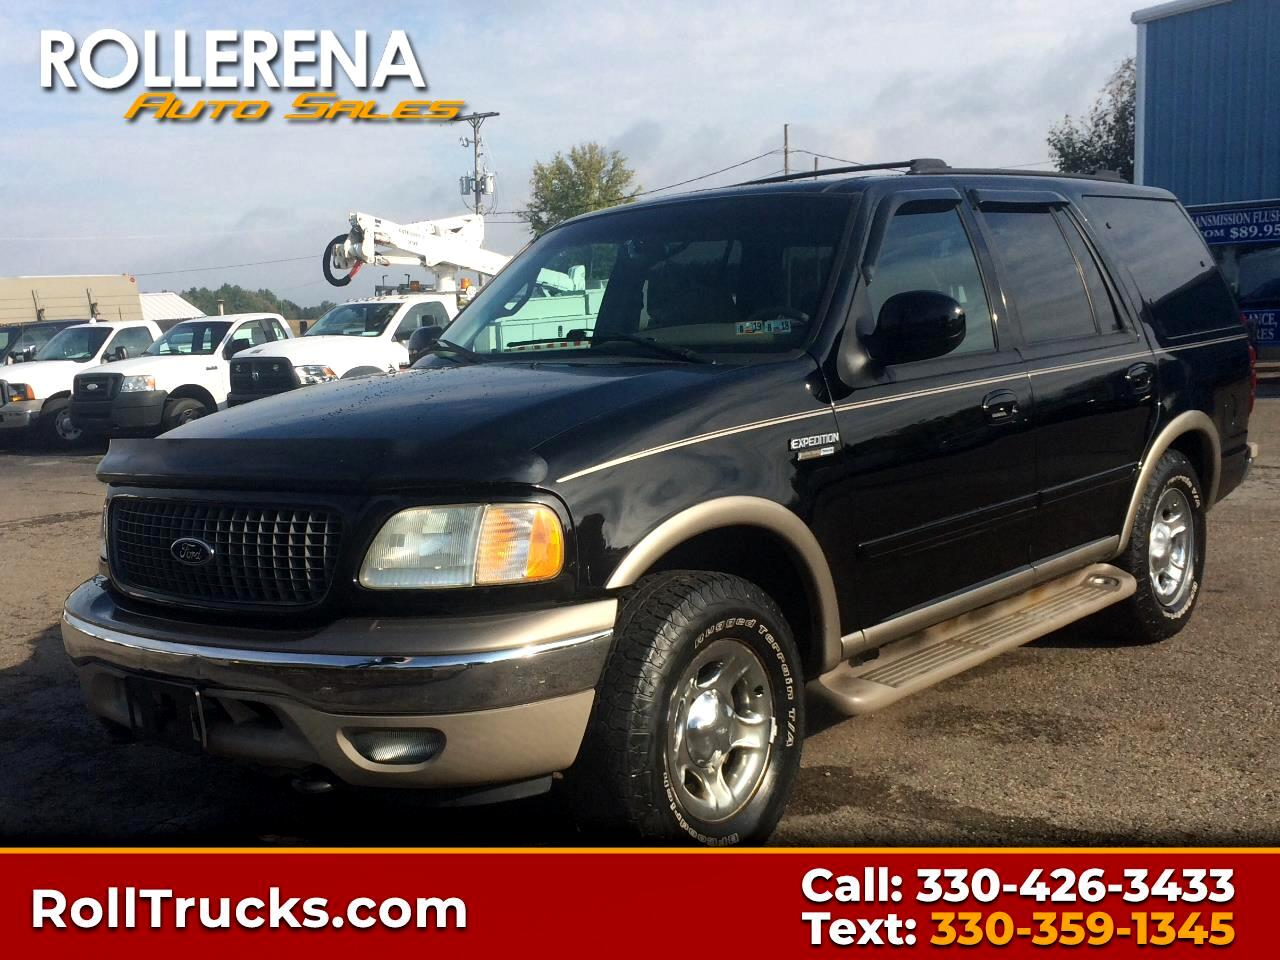 2002 Ford Expedition Eddie Bauer 4WD